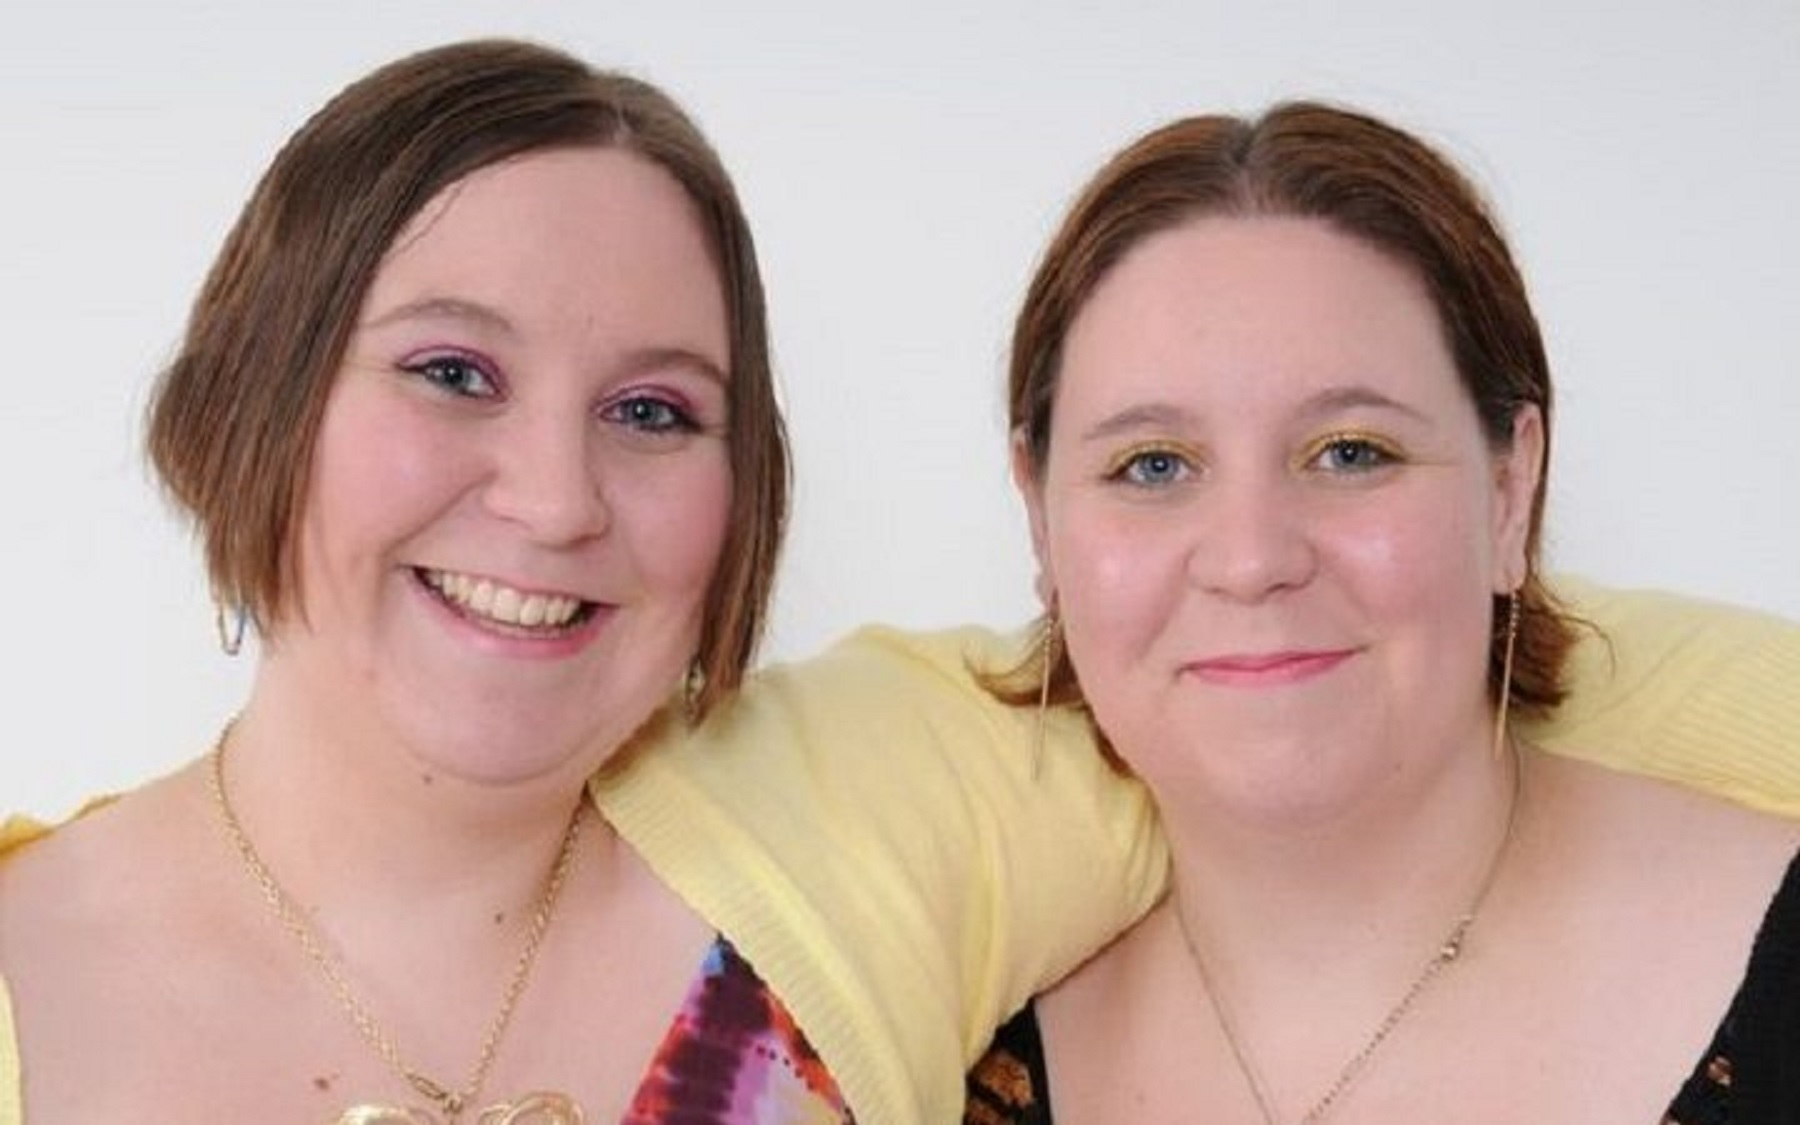 Twins, 37, who both worked as nurses die after both being diagnosed with coronavirus